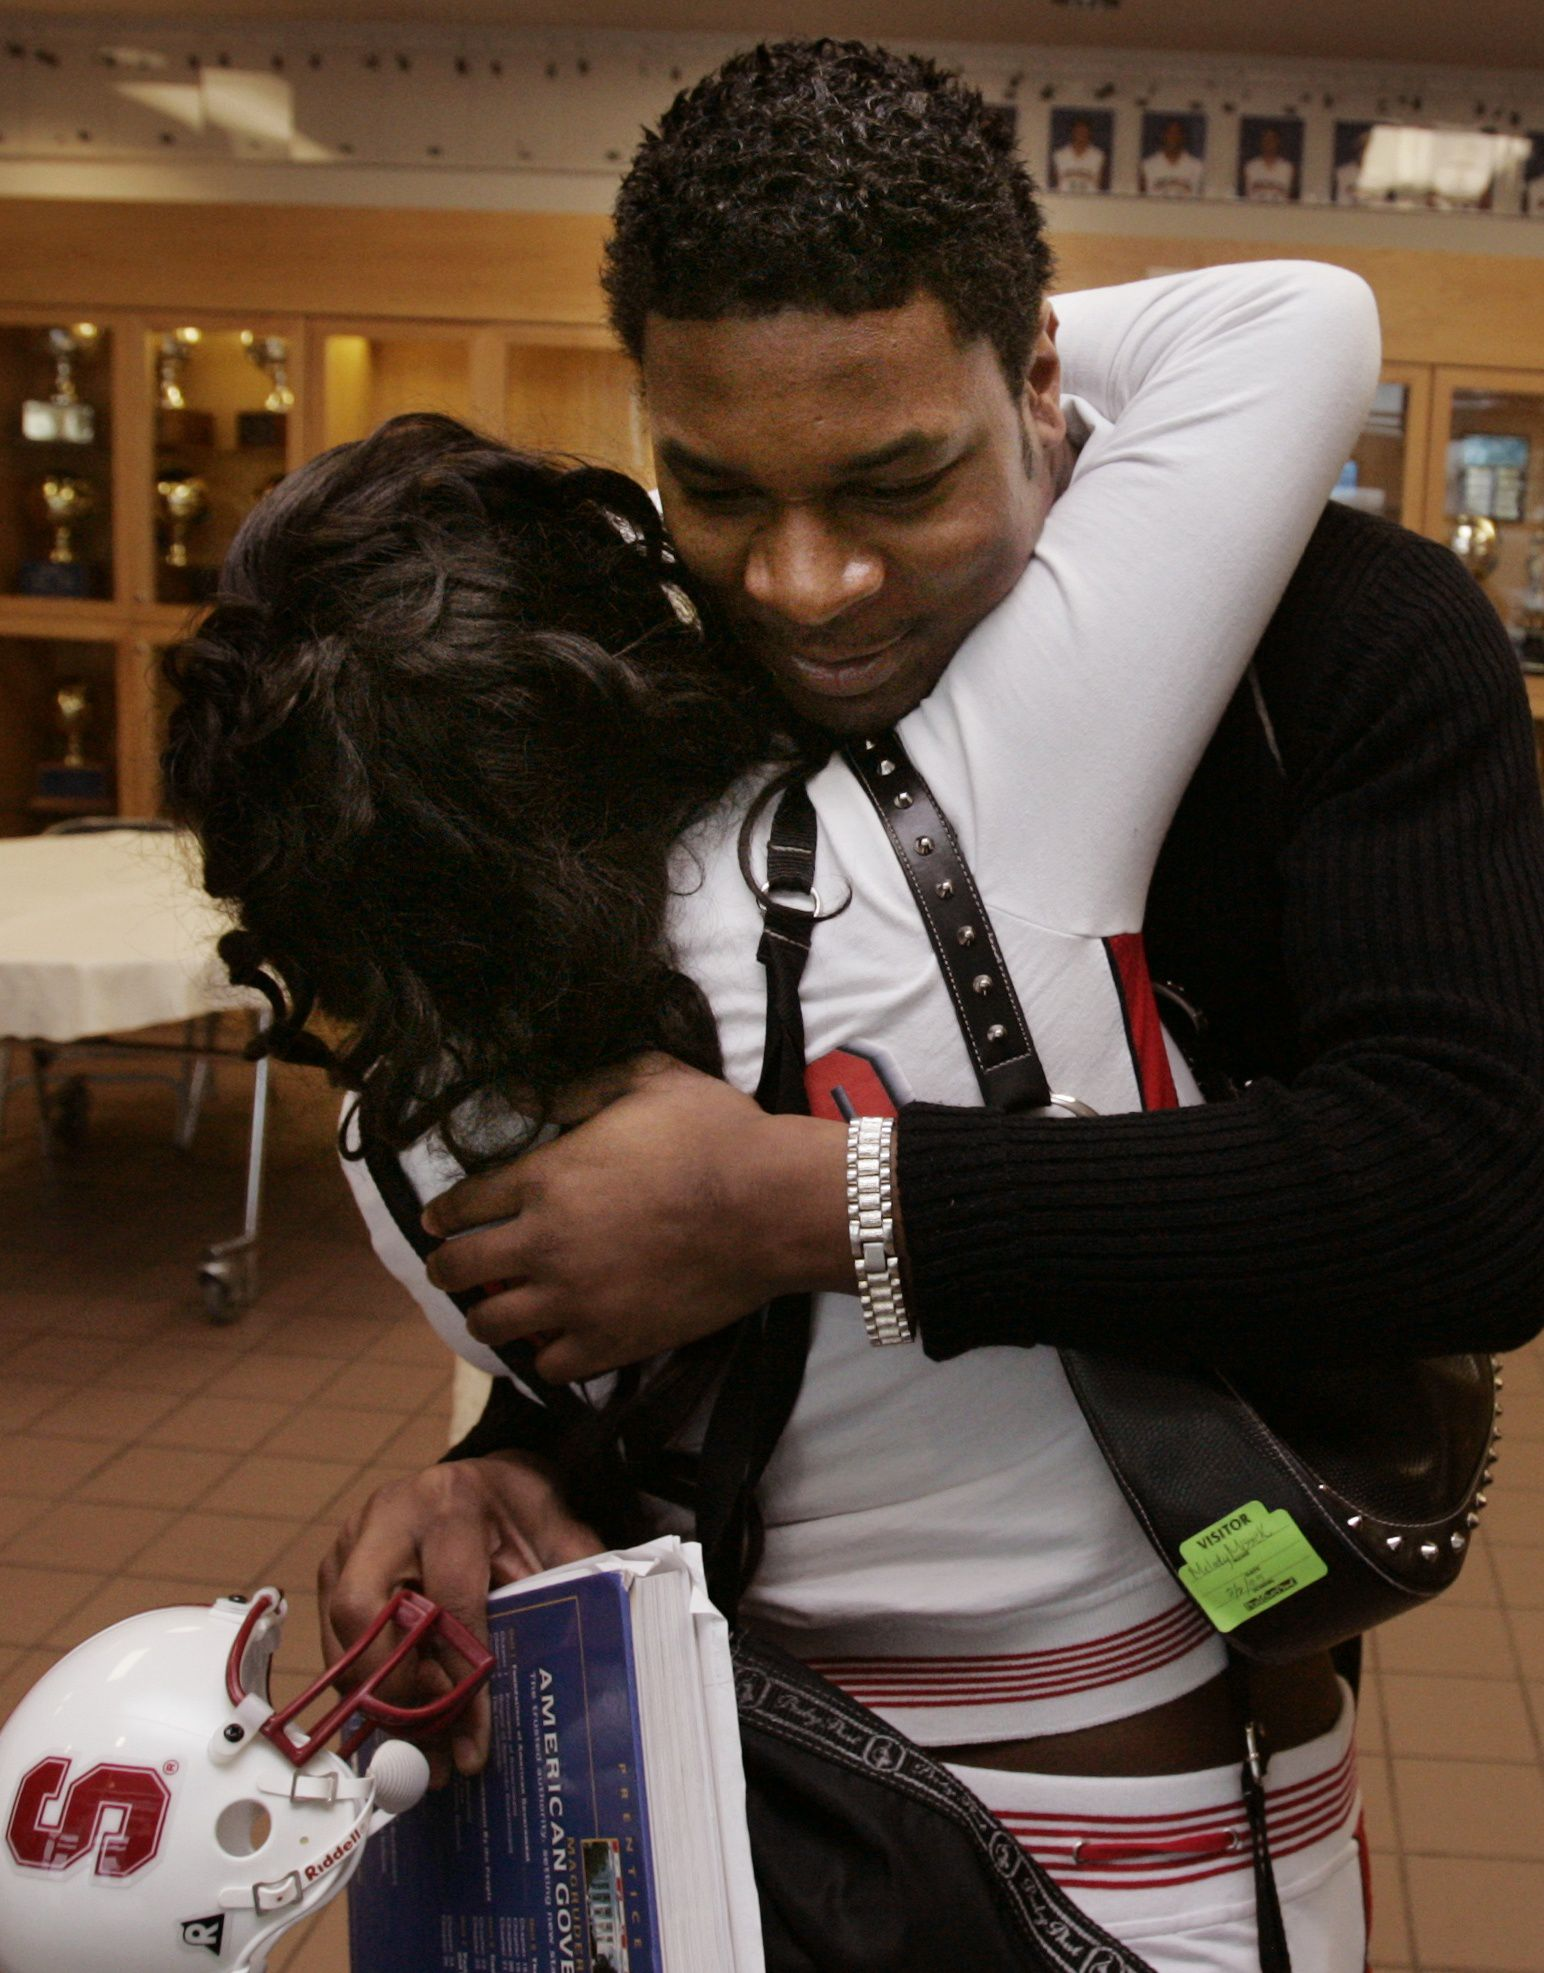 Frisco running back Xxavier Carter gets a hug from his sister Ebony Carter after signing his letter of intent to play football for Stanford on NCAA National Signing Day, Feb. 1, 2005, at Frisco High School. Xxavier signed his letter of intent to play football for Stanford.